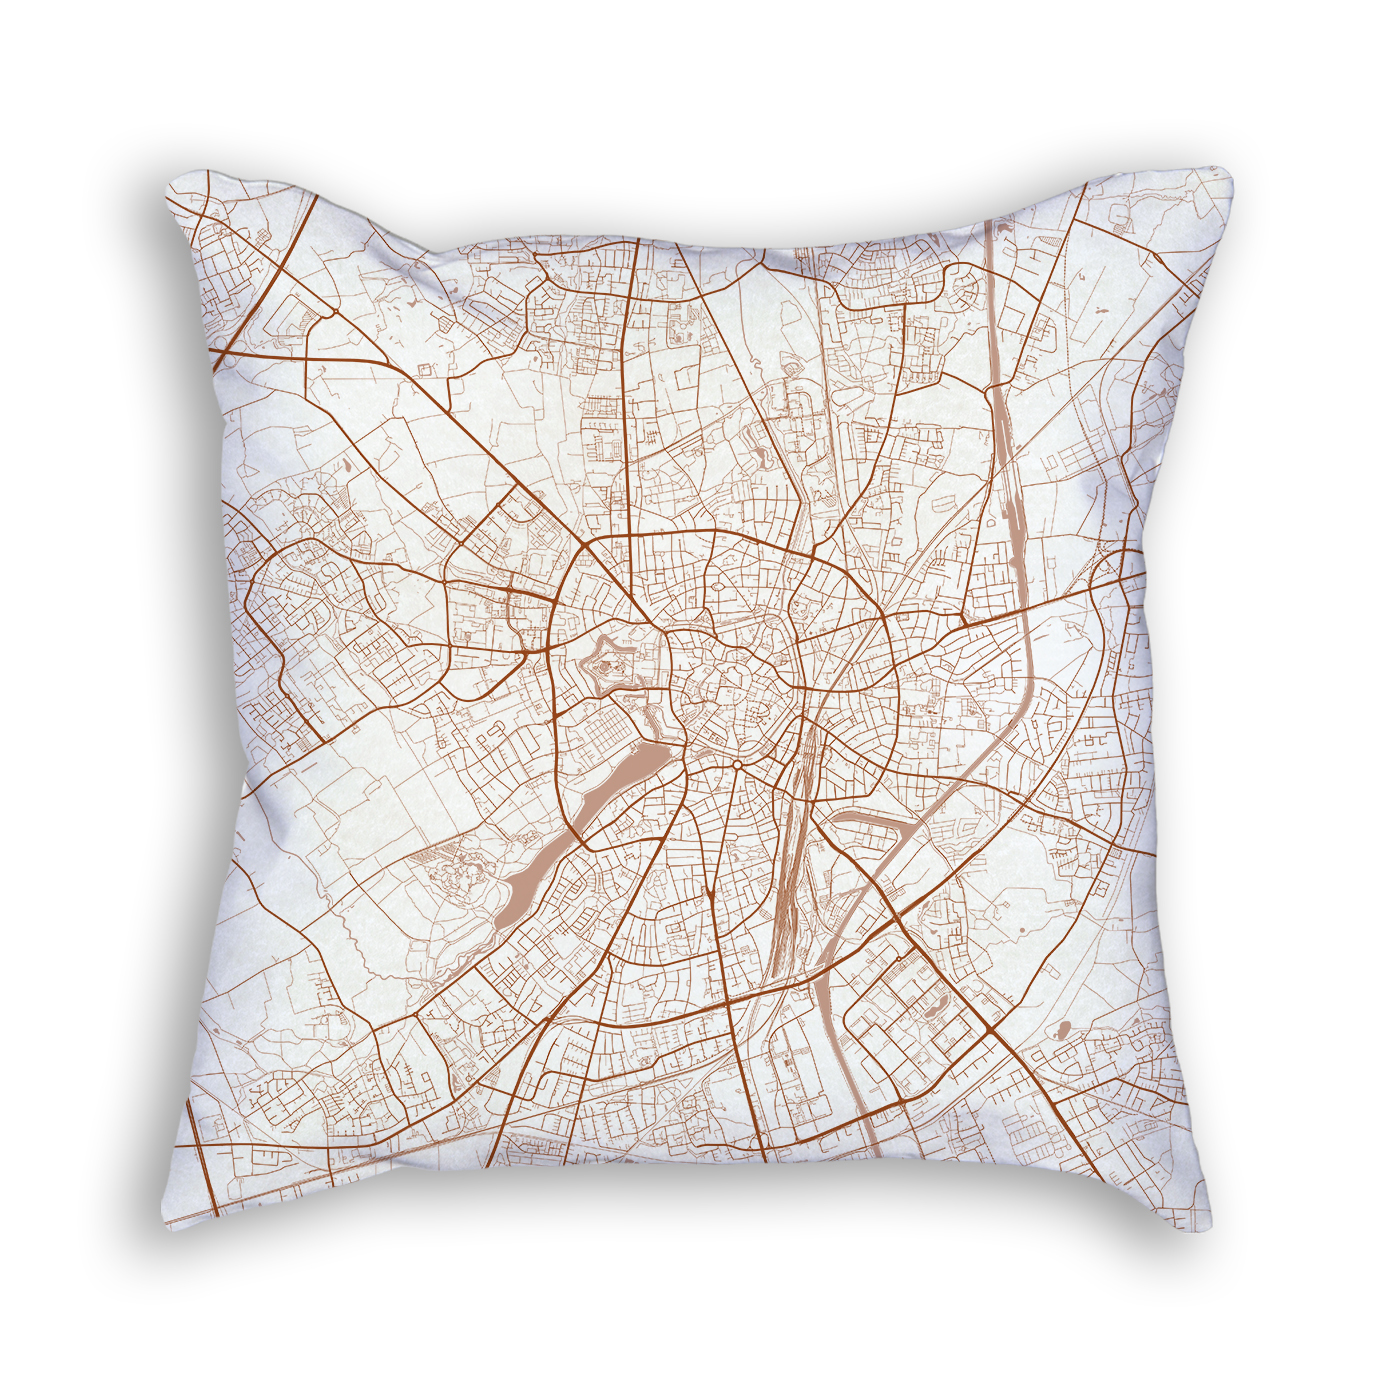 Munster Germany City Map Art Decorative Throw Pillow